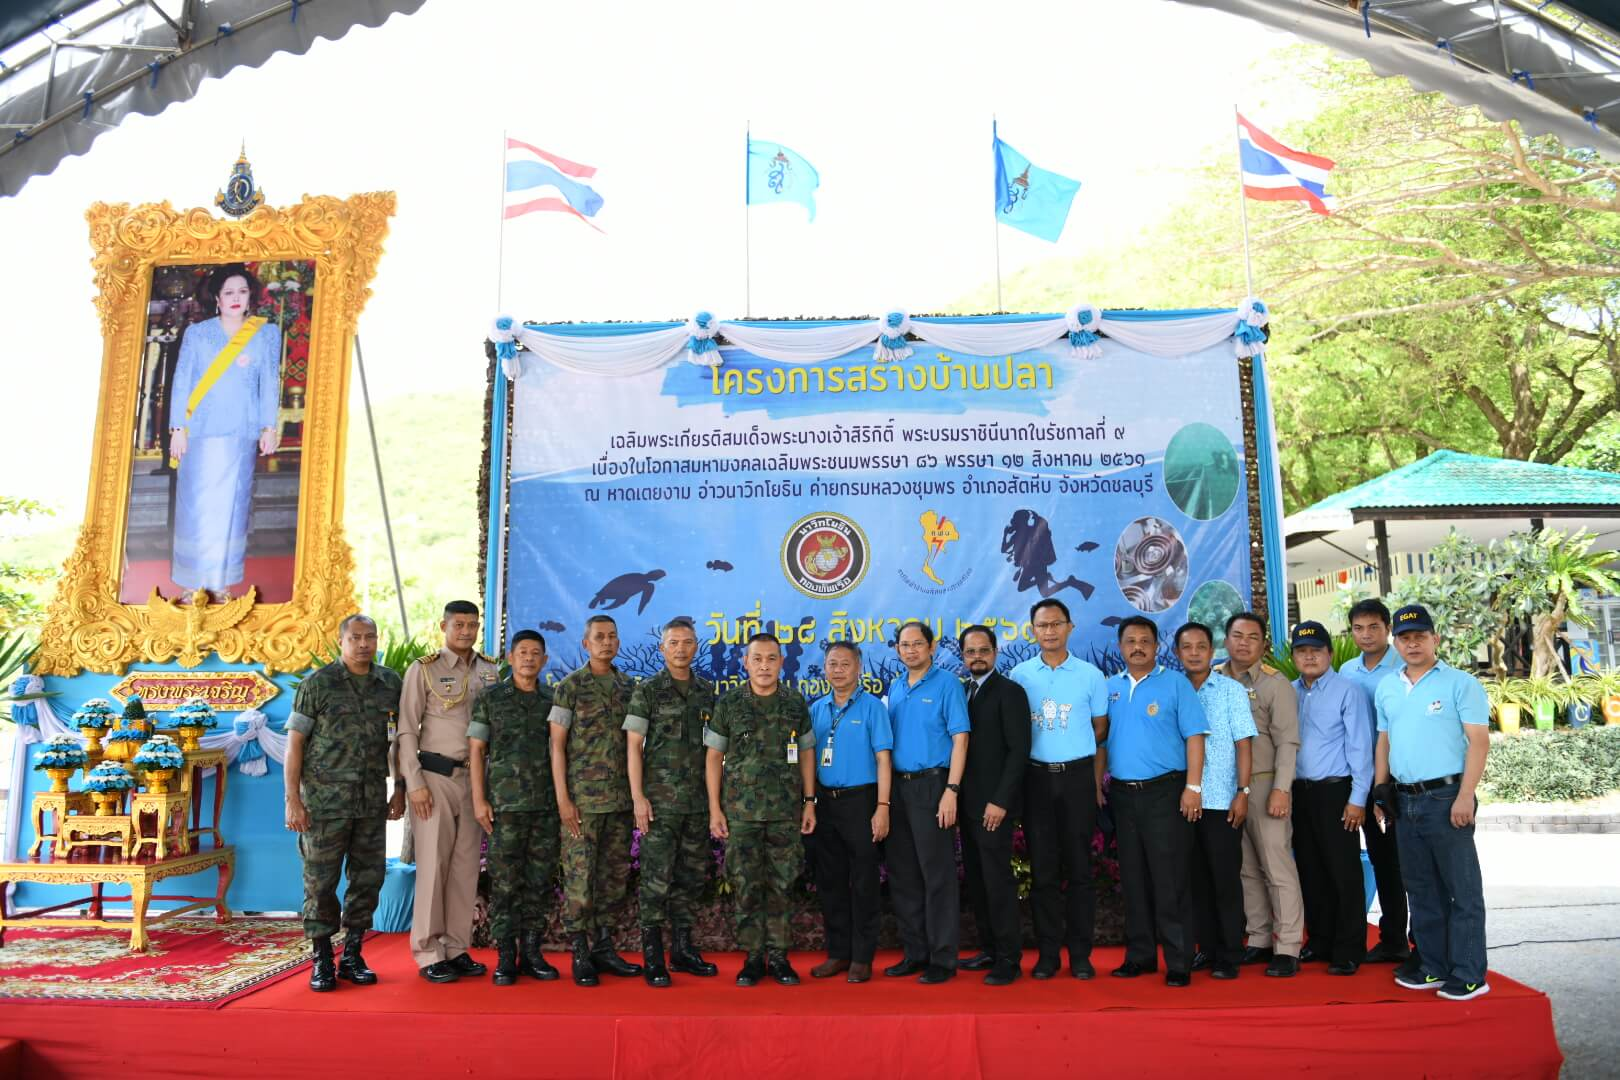 EGAT and Royal Thai Navy locate artificial reefs made from insulators to rehabilitate natural resources